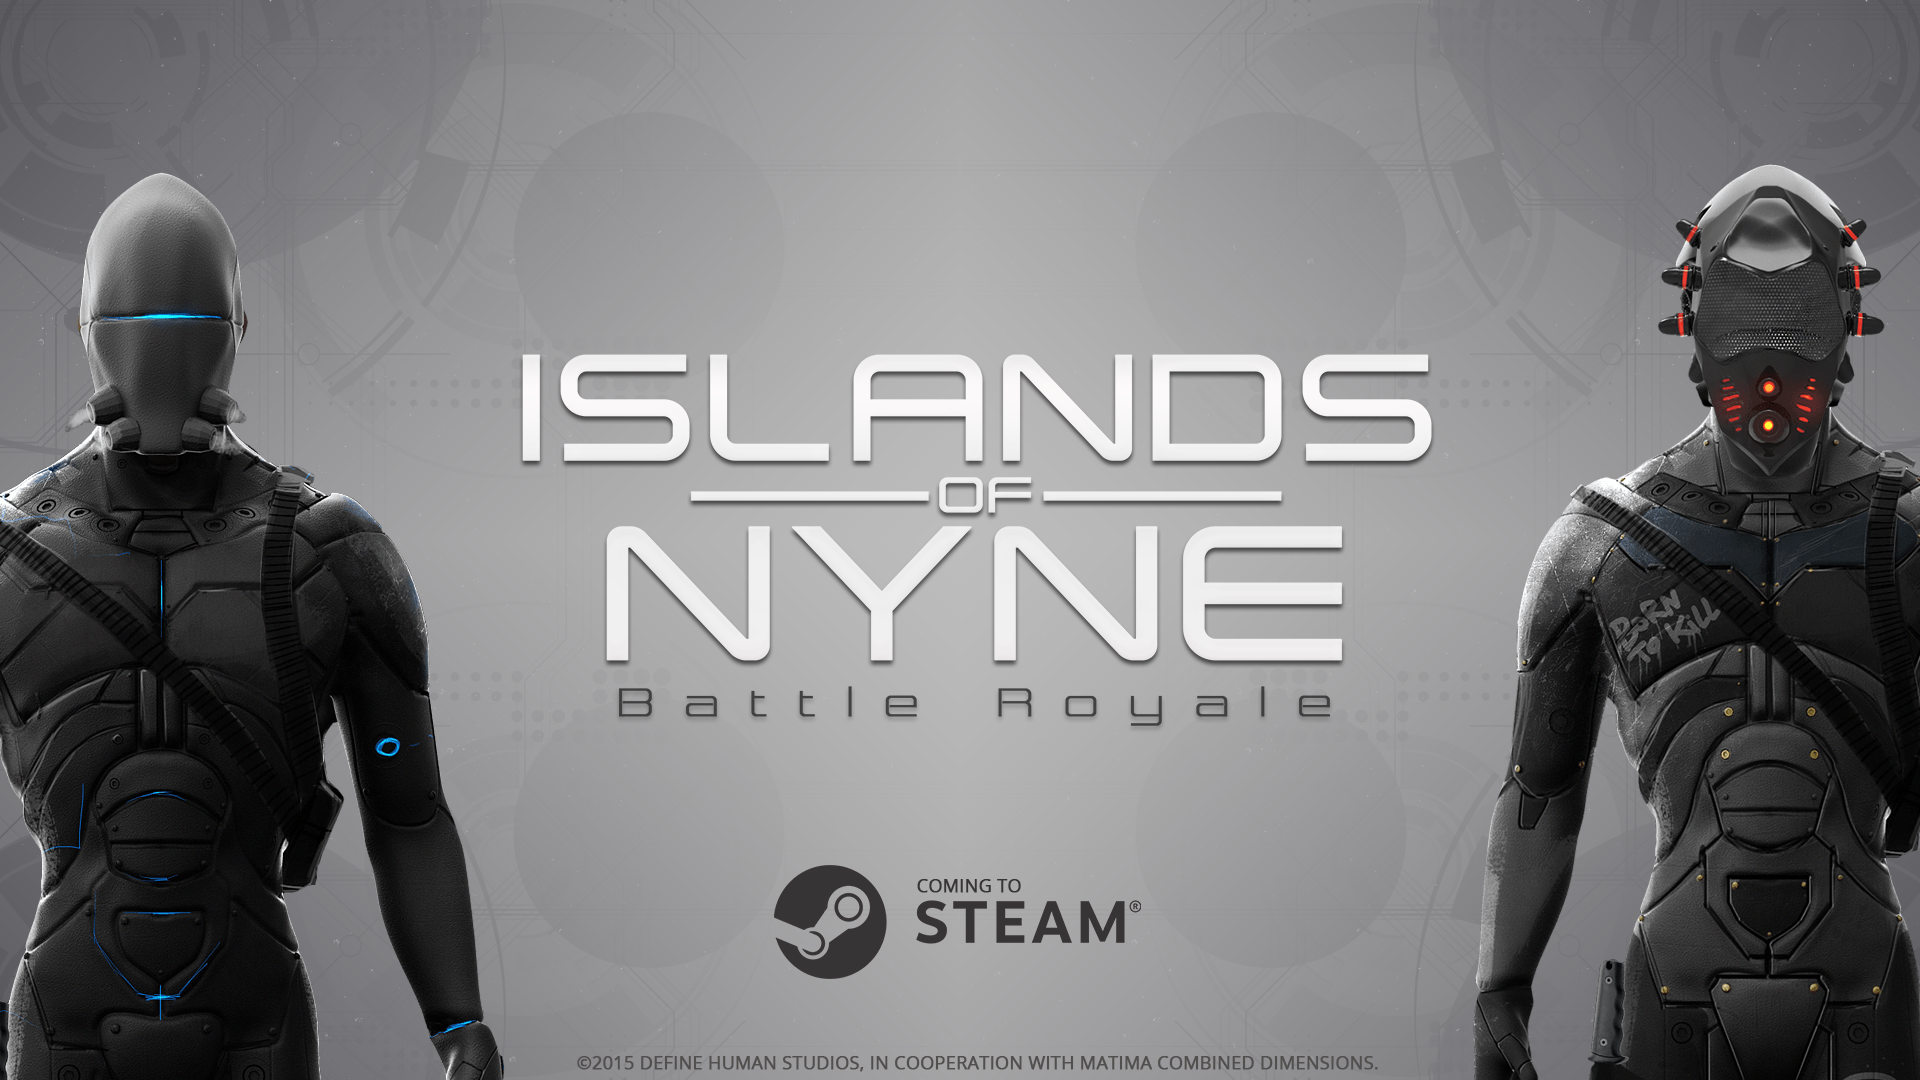 Islands of Nyne Battle Royale Alpha